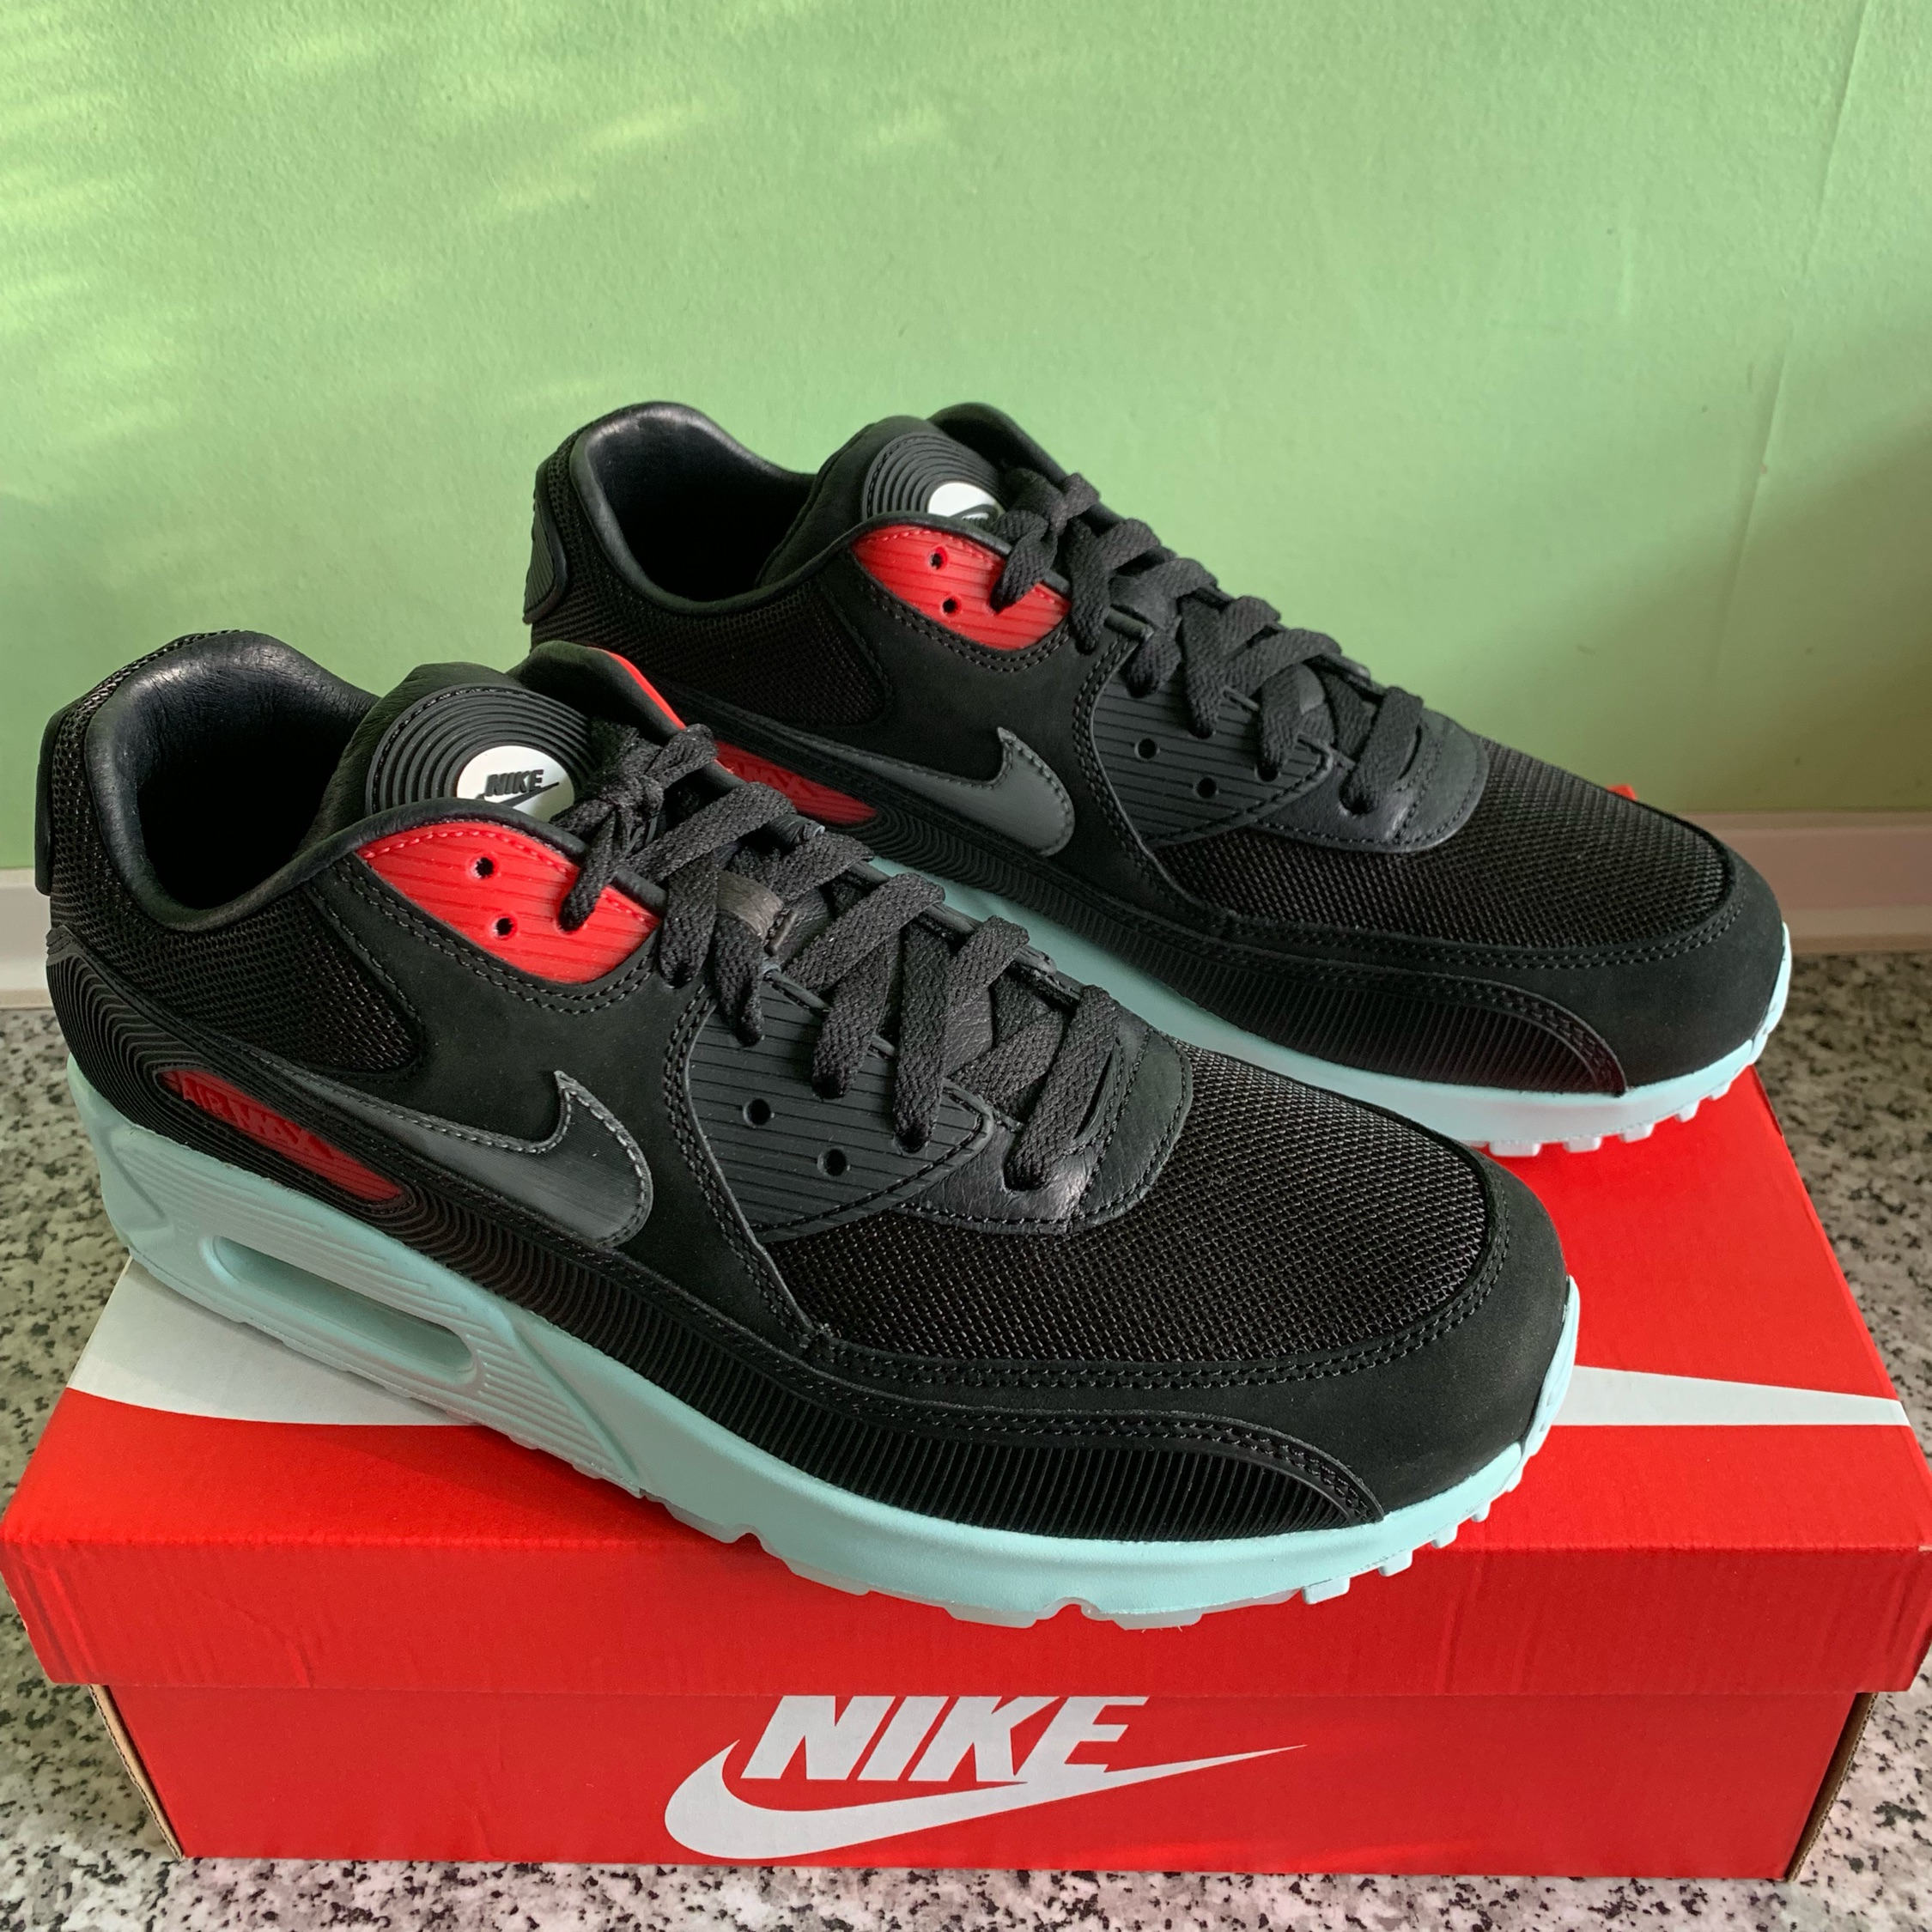 Buy Nike Air Max Other Shoes & Deadstock Sneakers